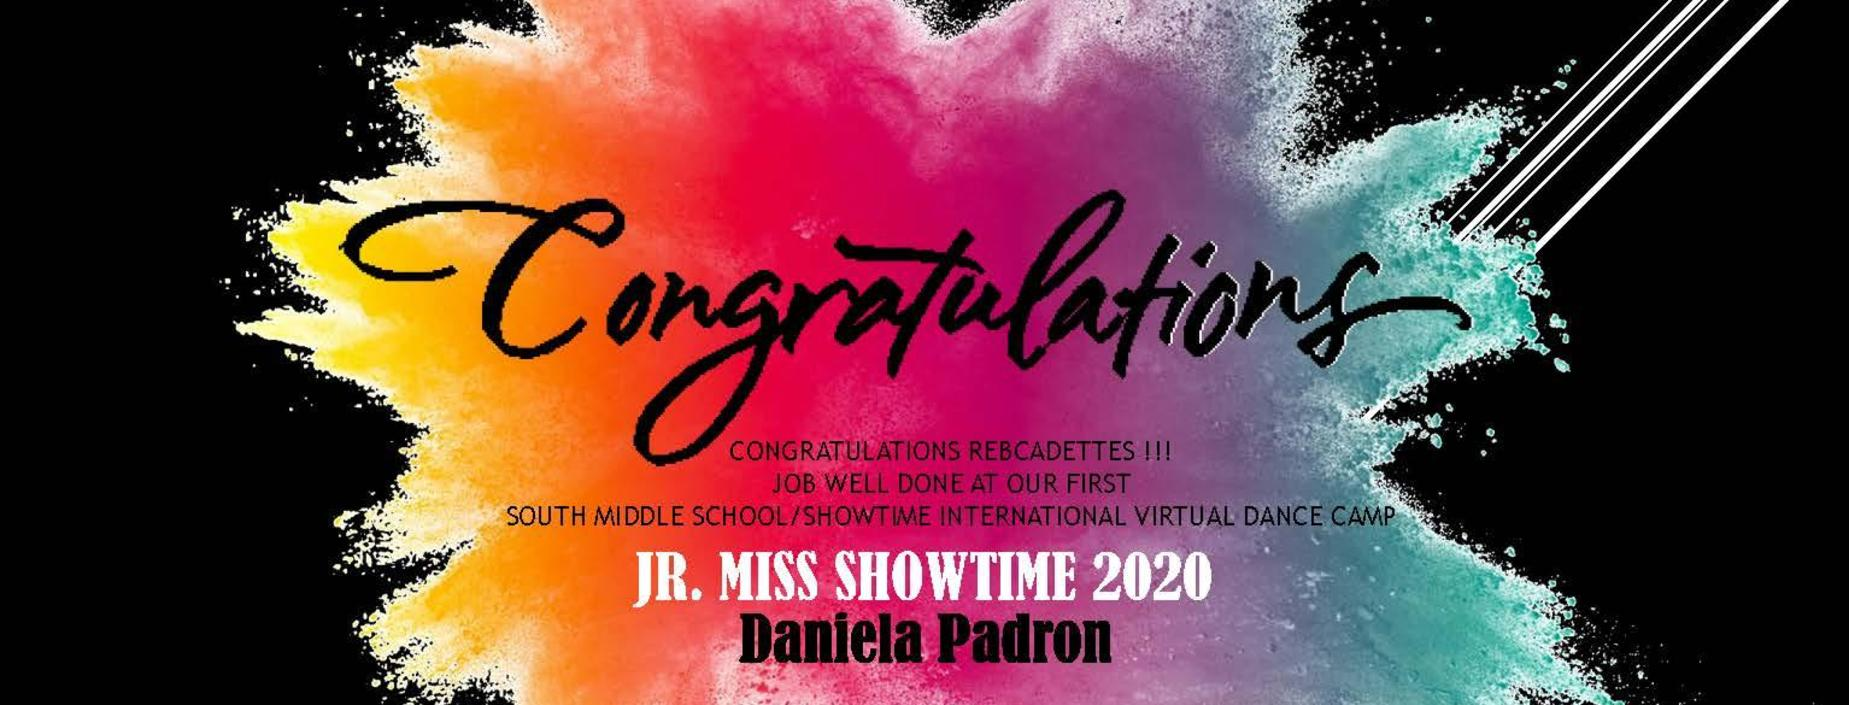 Congratulations Rebcadettes !!!  Job well done at our first  South Middle School/ShowTime International Virtual Dance Camp.